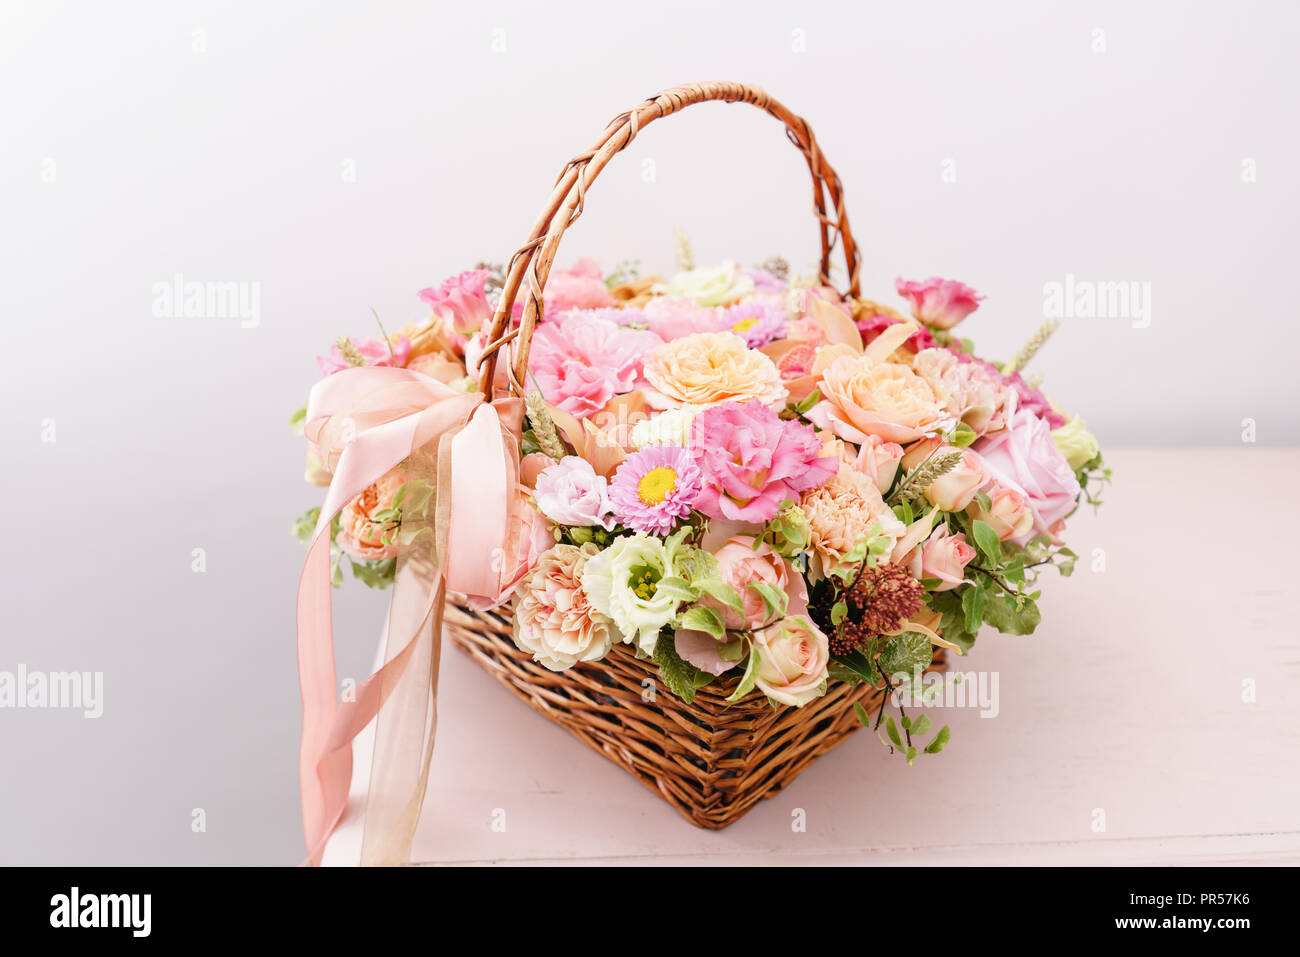 Flowers Arrangement With Various Of Colors In Wicker Basket On Pink